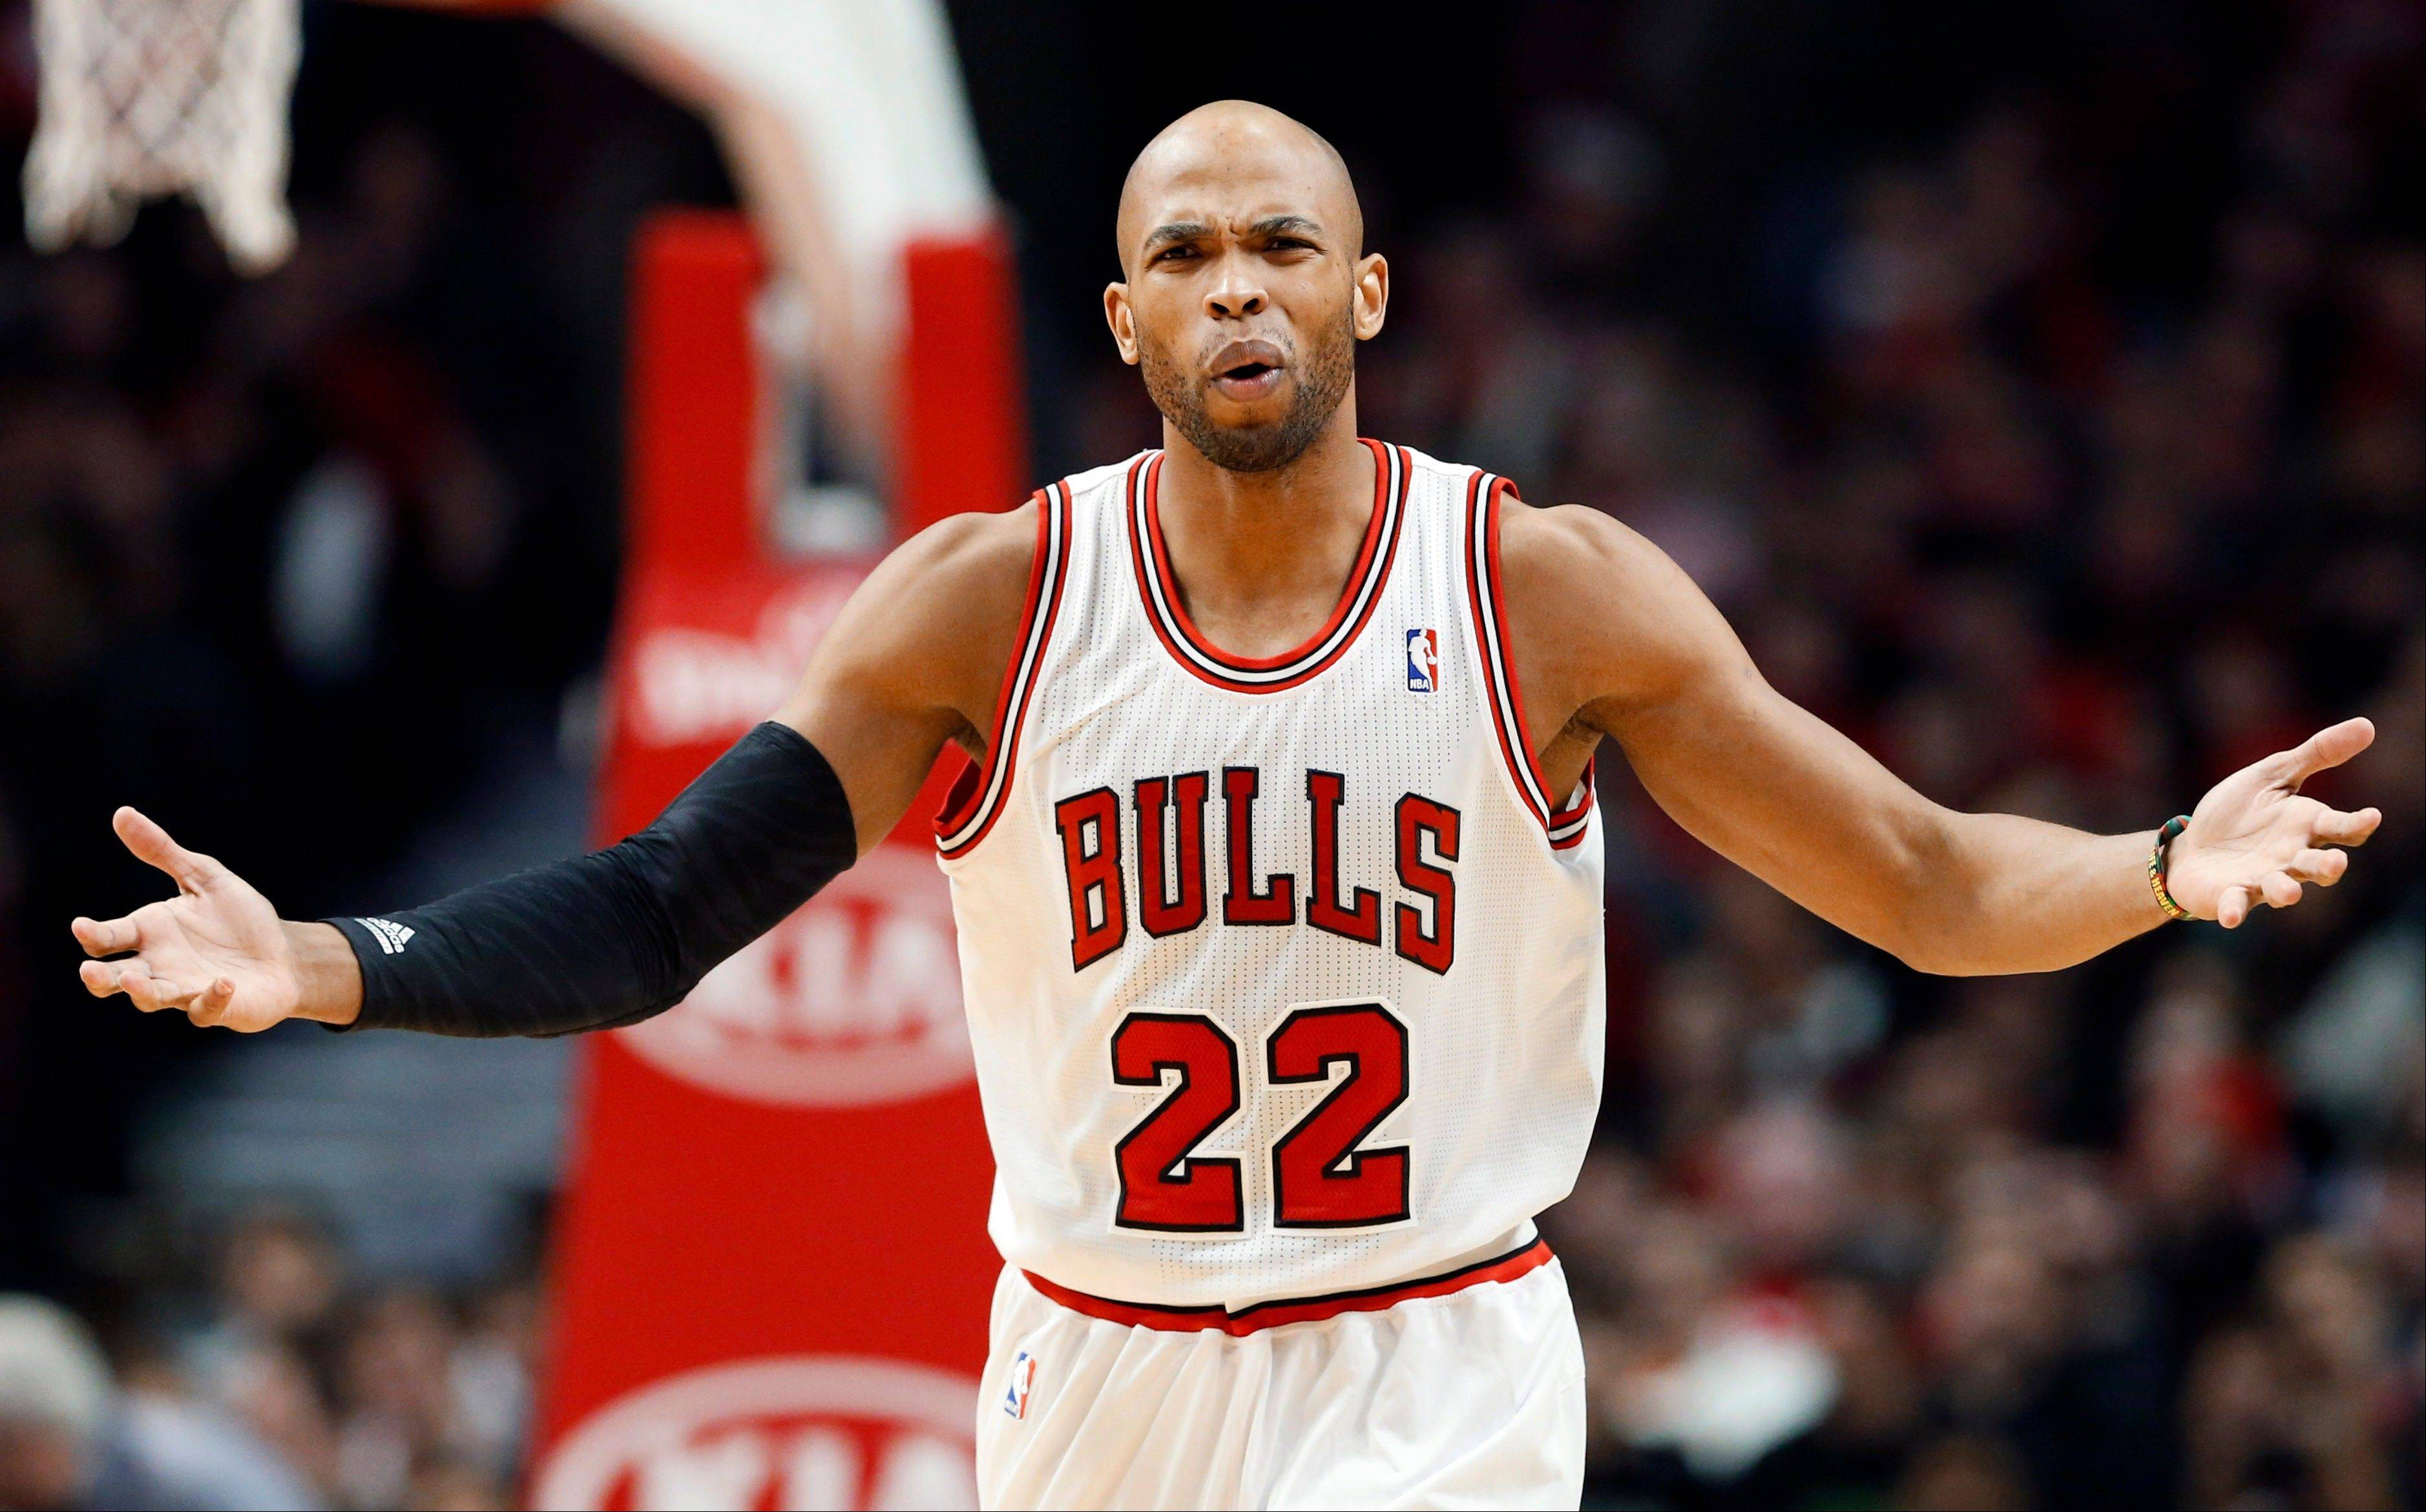 Chicago Bulls forward Taj Gibson reacts to a call during the first half of an NBA basketball game against the Phoenix Suns in Chicago on Saturday, Jan. 12, 2013.